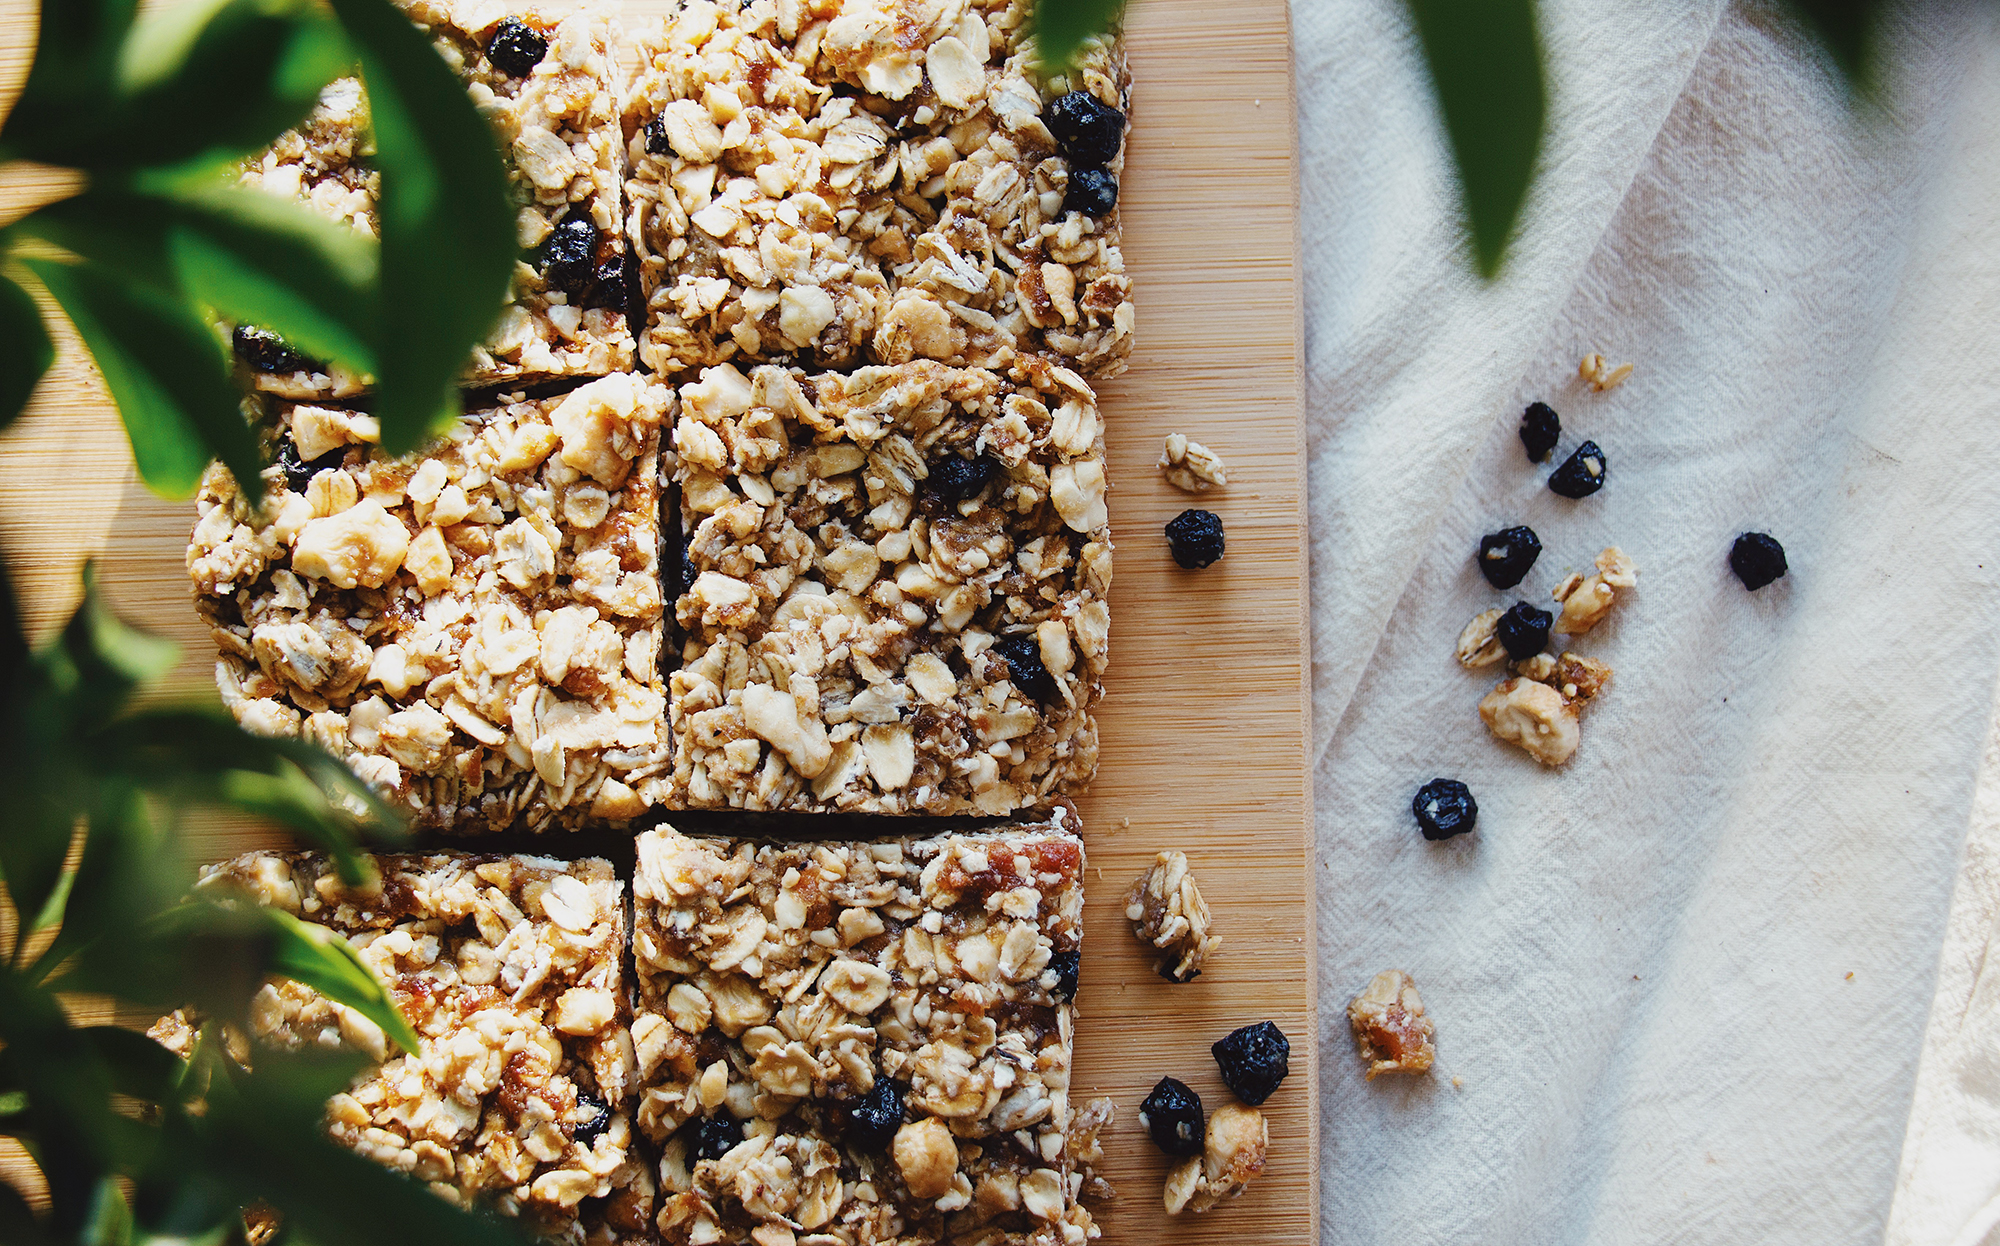 Homeade Granola Bars on Cutting Board